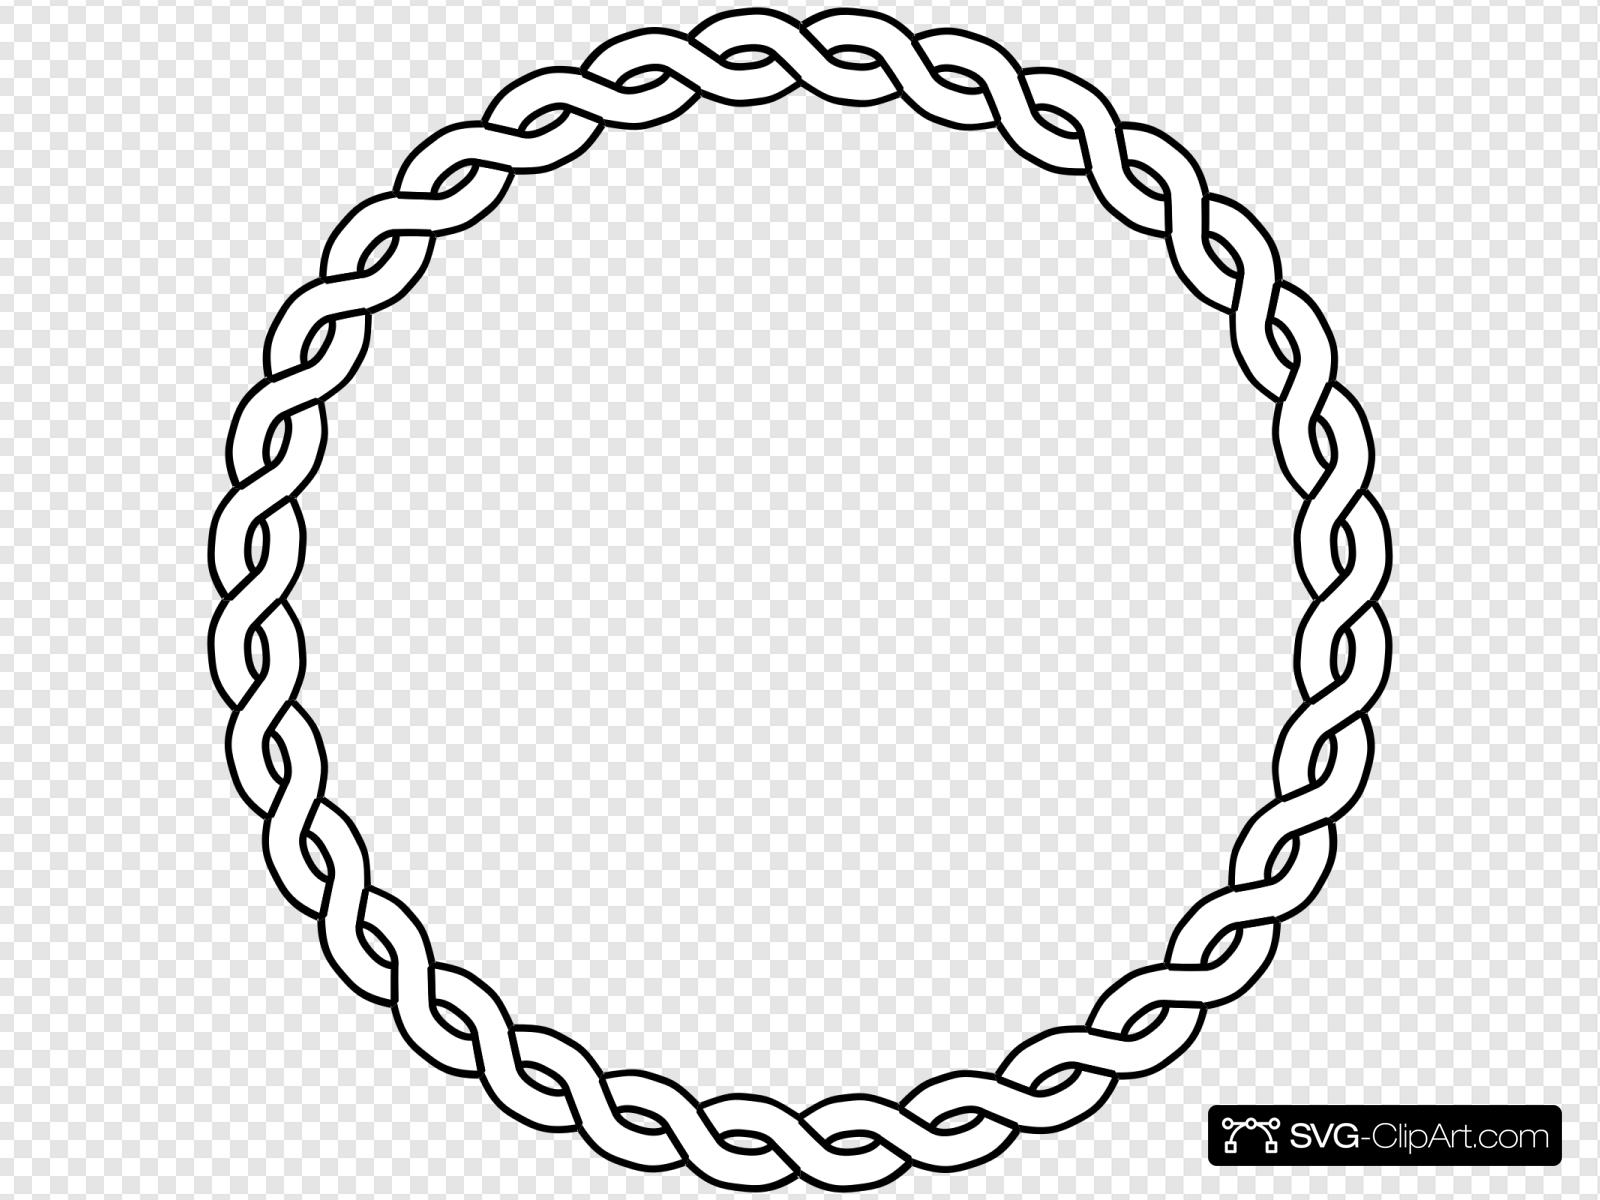 Circle of rope clipart graphic stock Rope Border Circle Clip art, Icon and SVG - SVG Clipart graphic stock